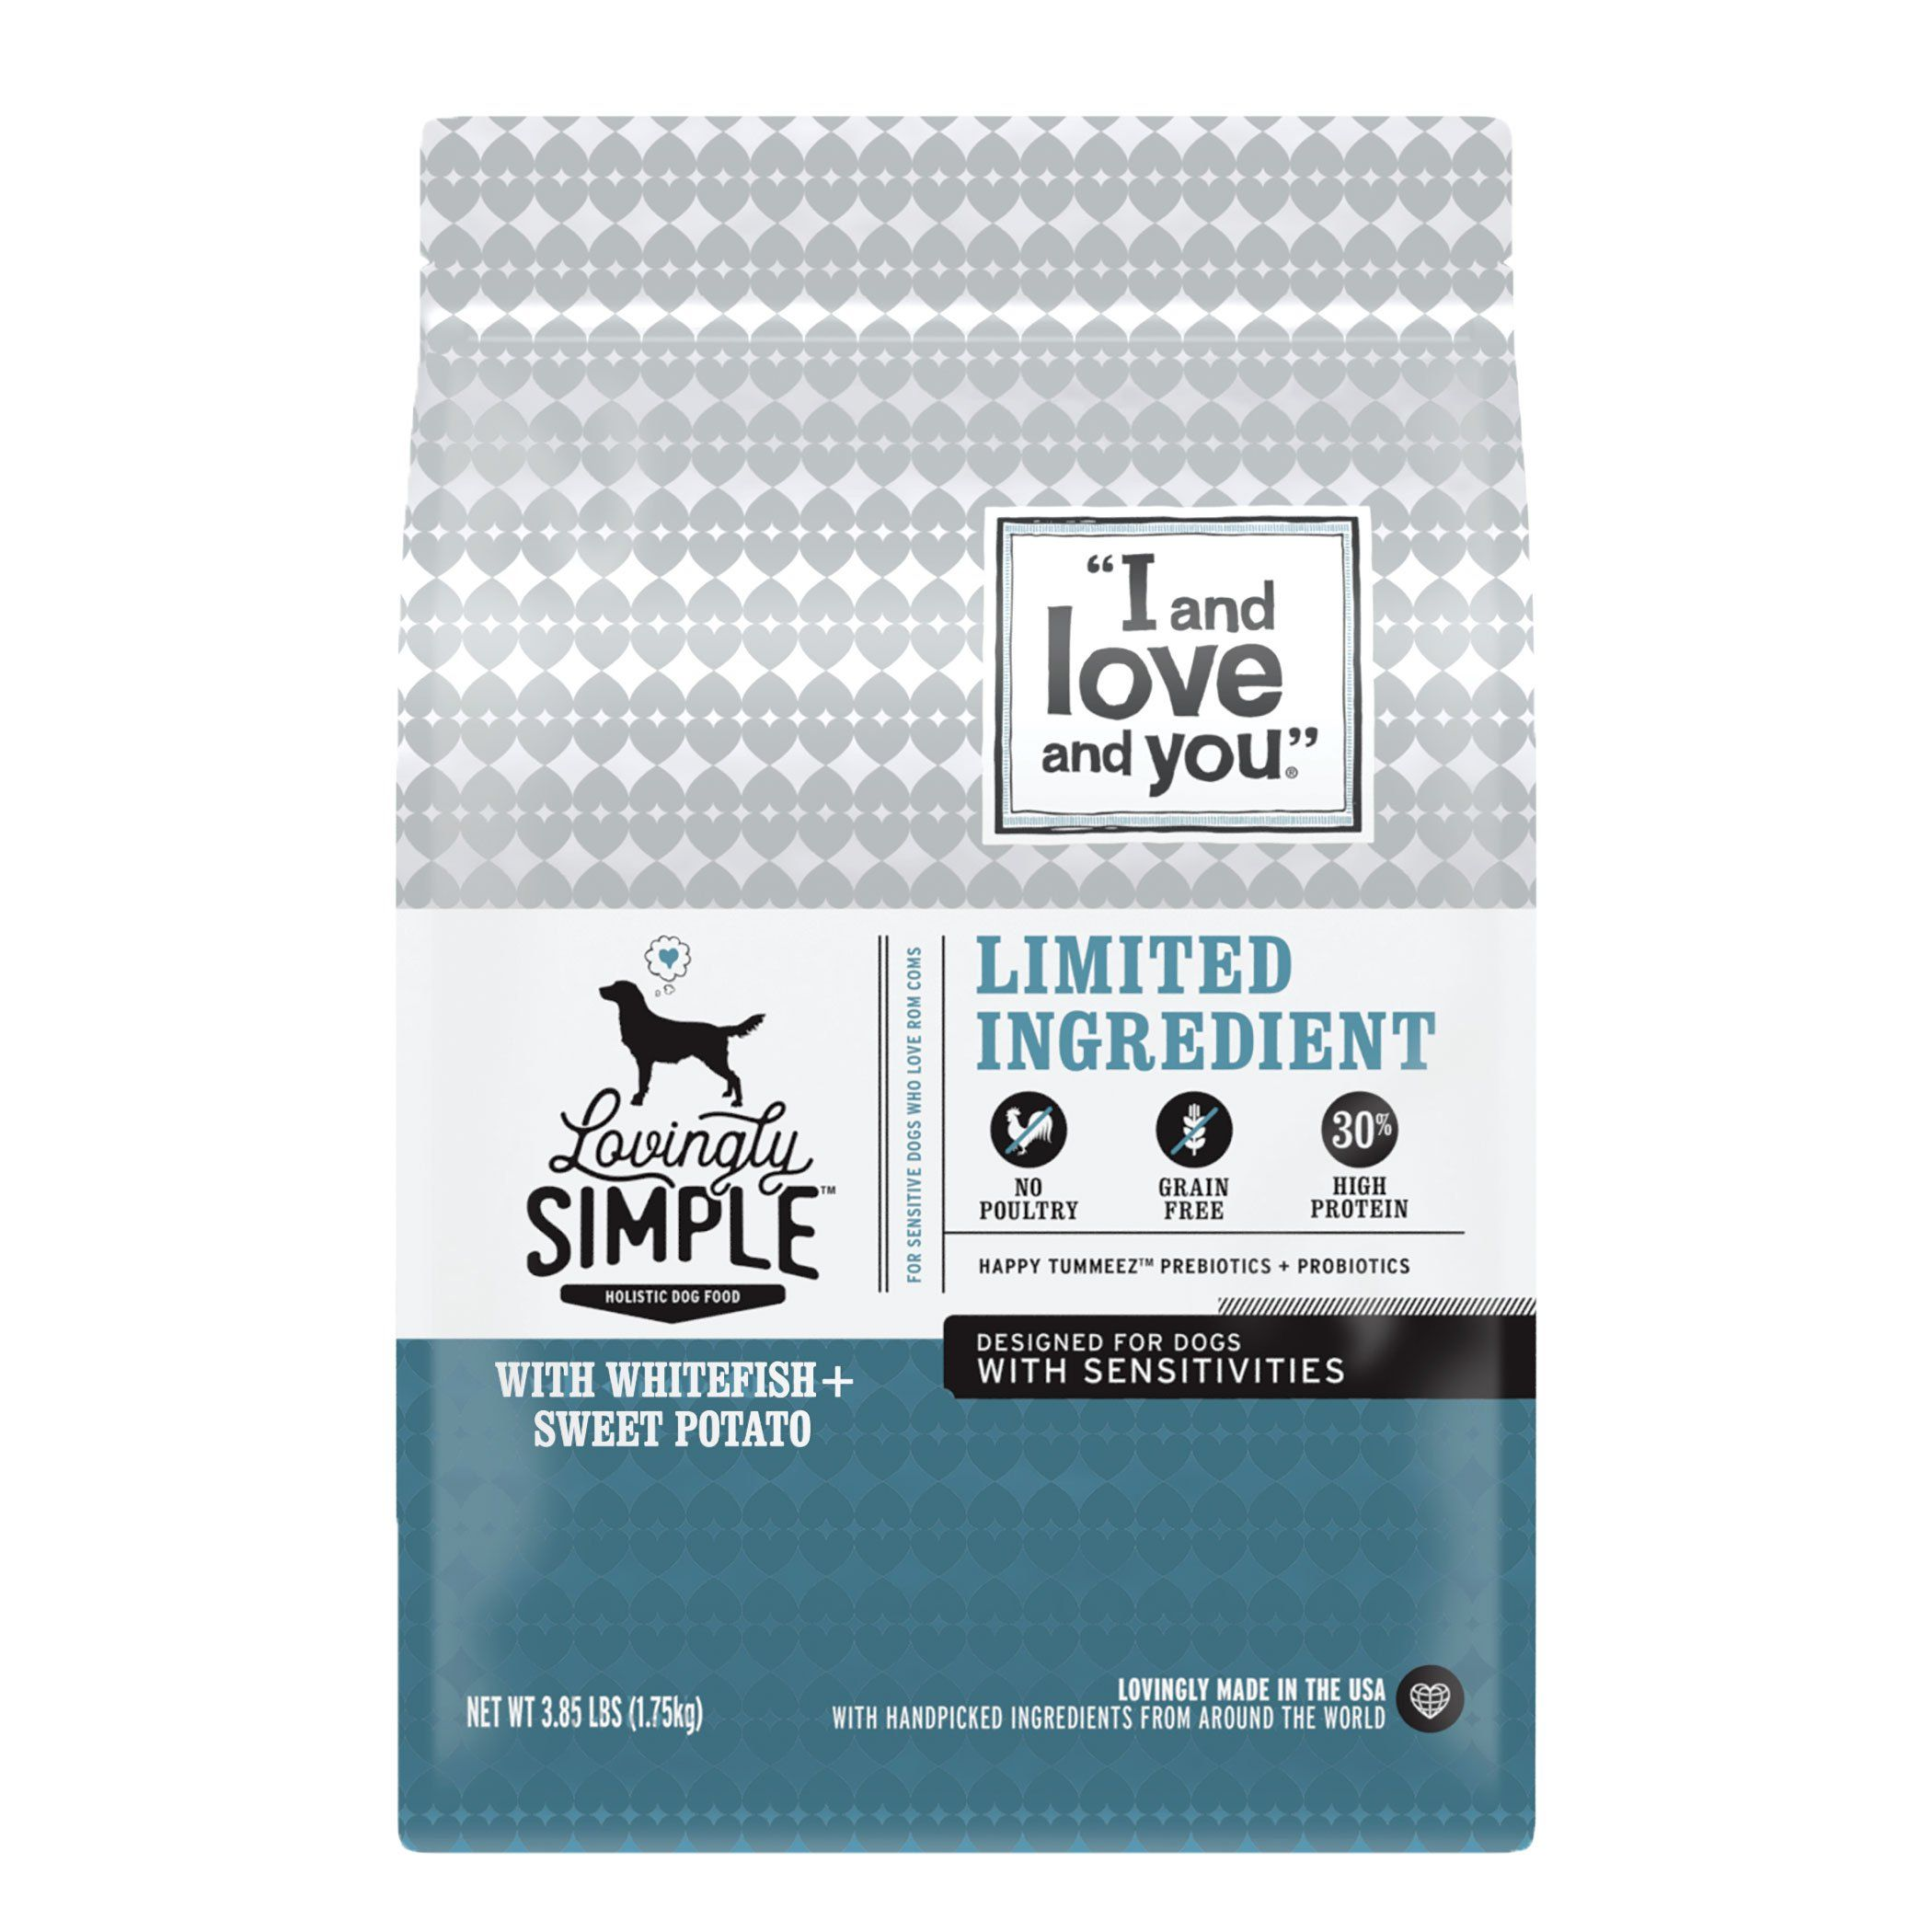 I and love and you lovingly simple limited ingredient